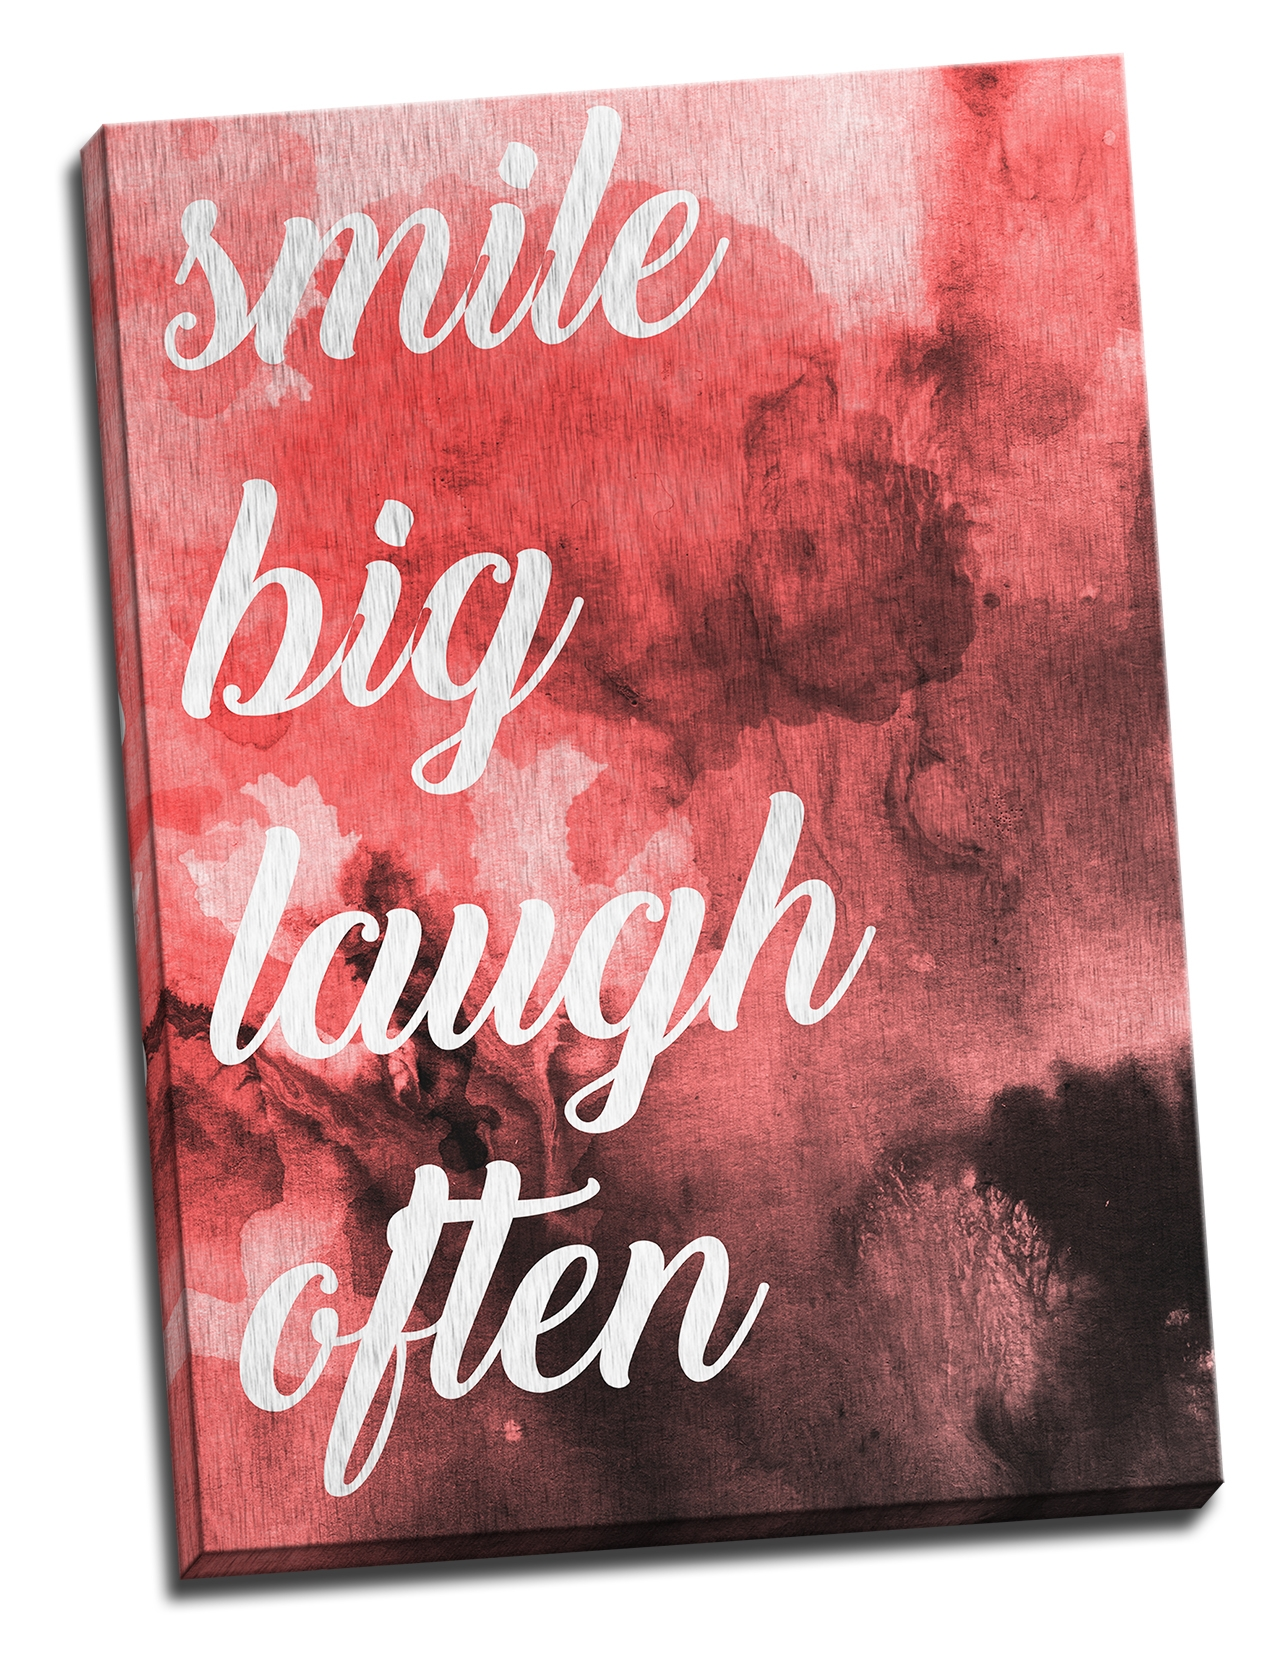 Tablou din aluminiu striat Smile Big Laugh Often